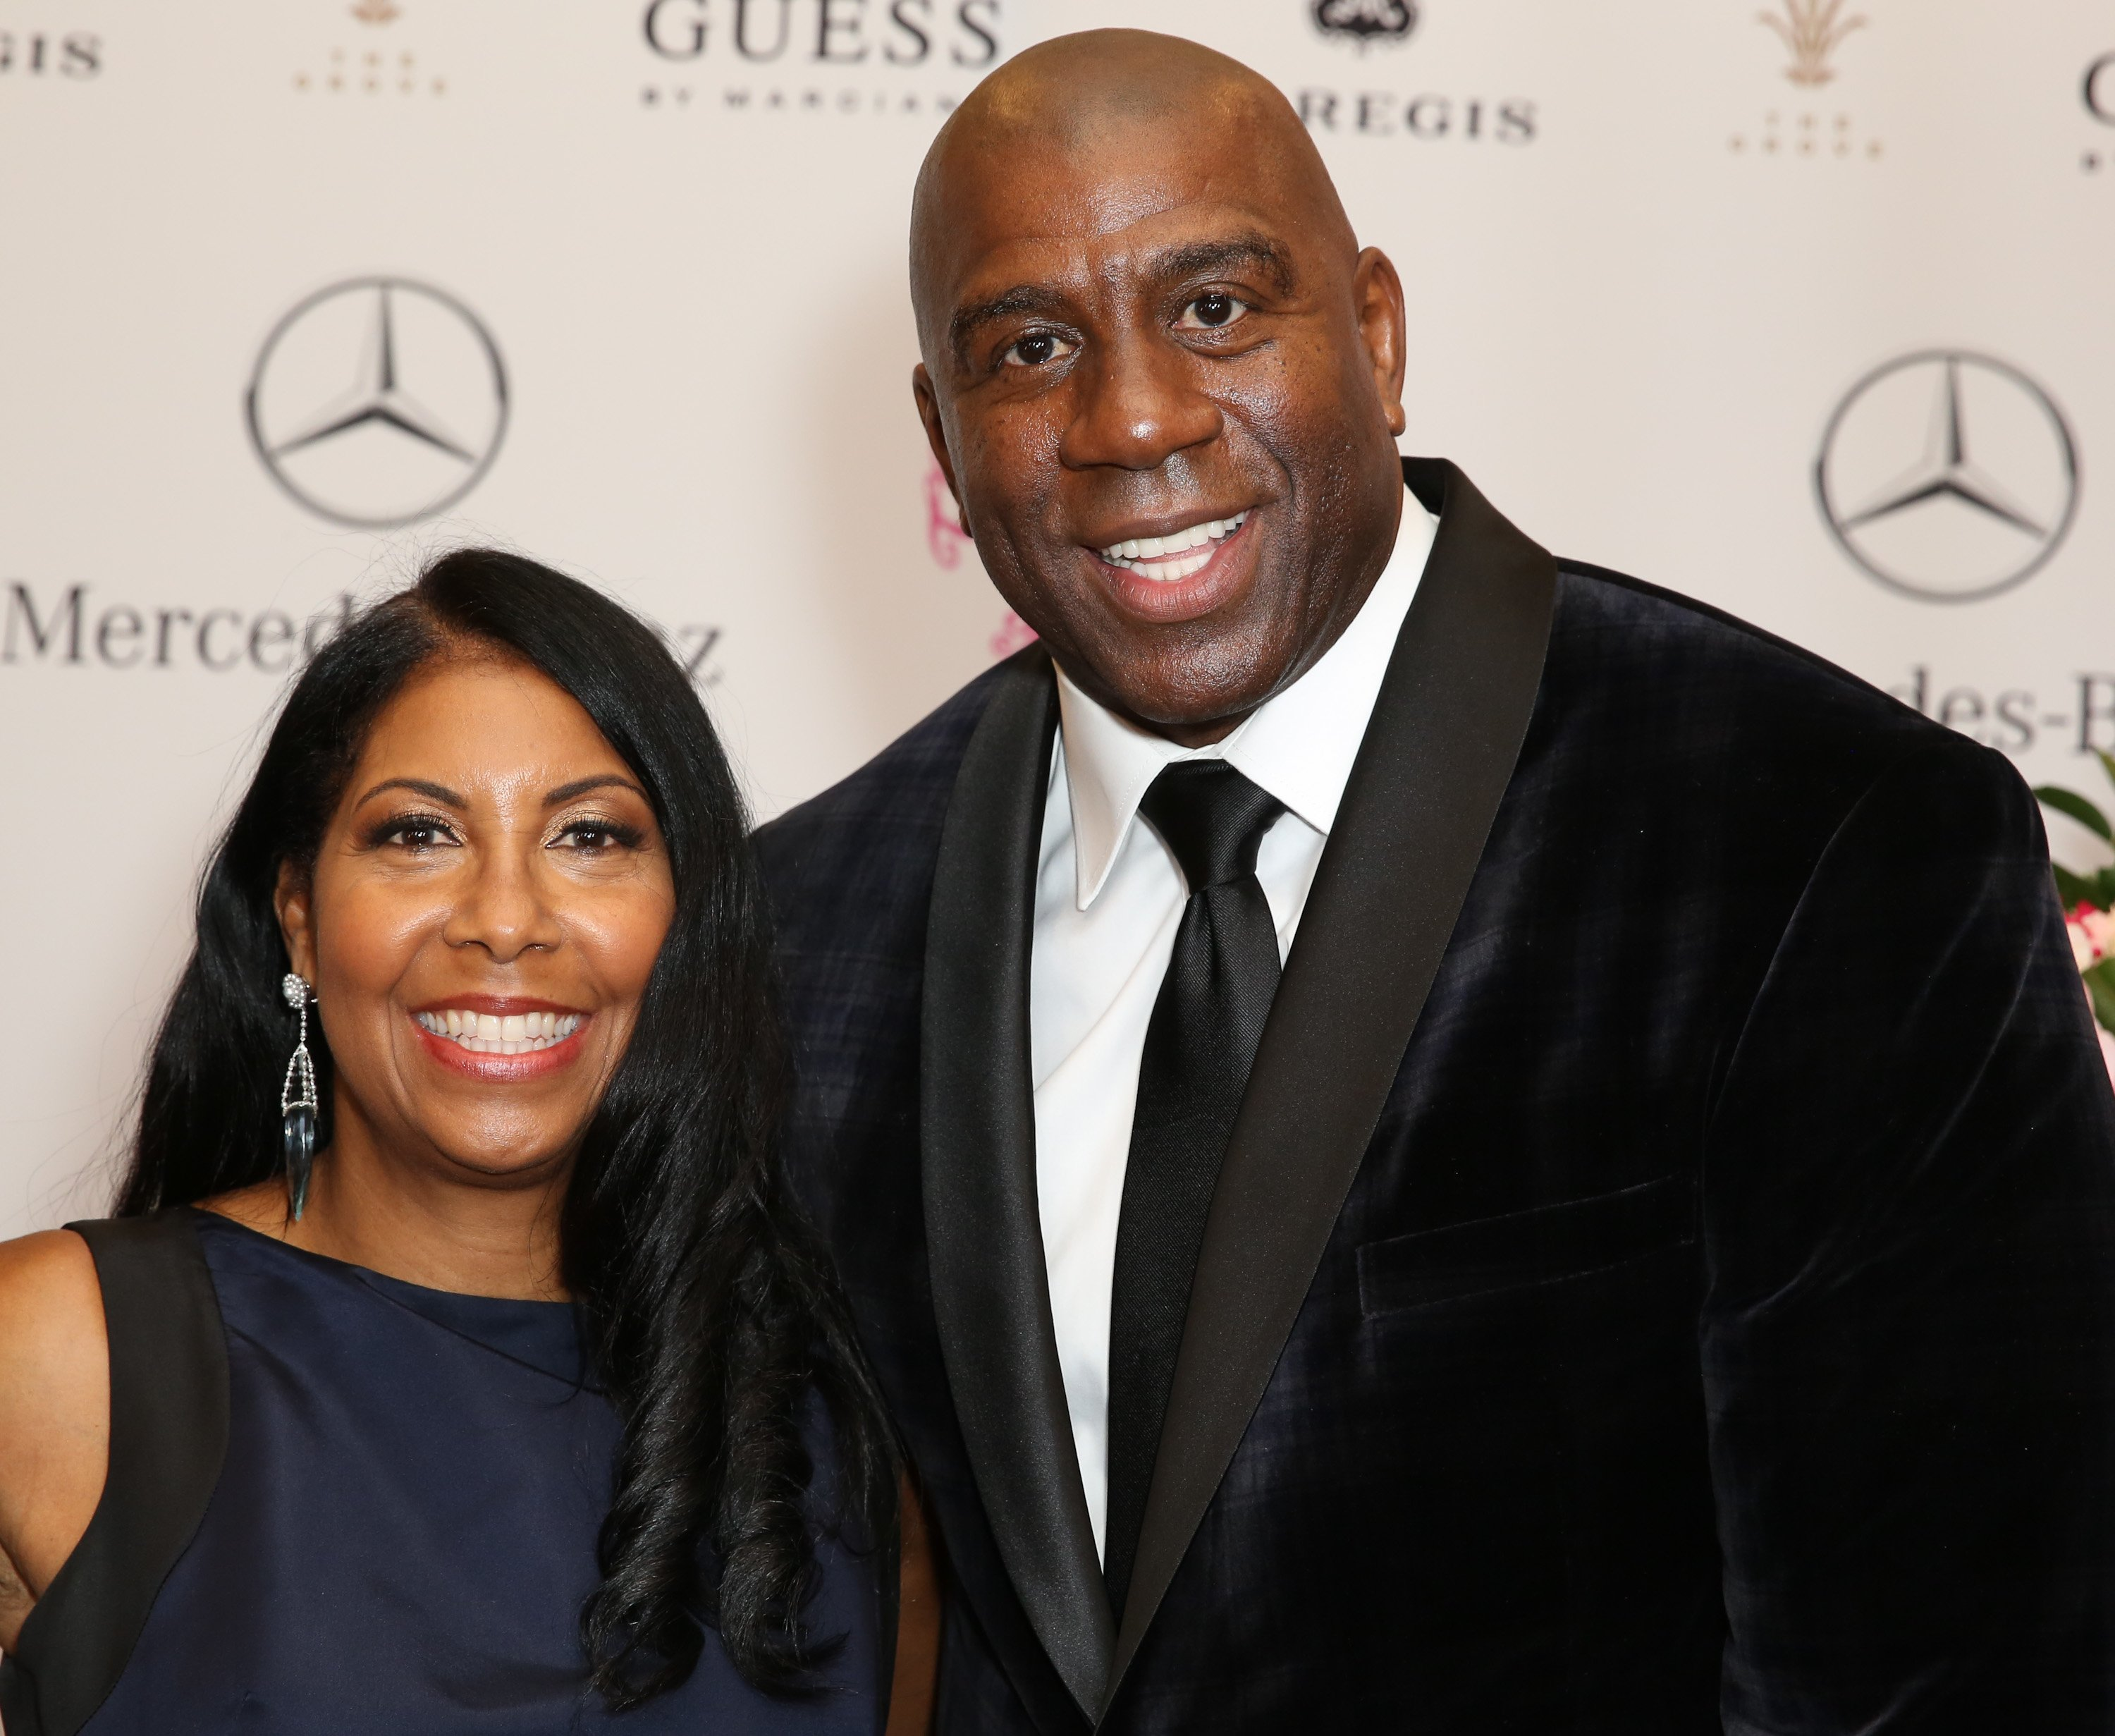 Cookie Johnson & Earvin 'Magic' Johnson at the Carousel of Hope Ball on Oct. 11, 2014 in California. | Source: Getty Images